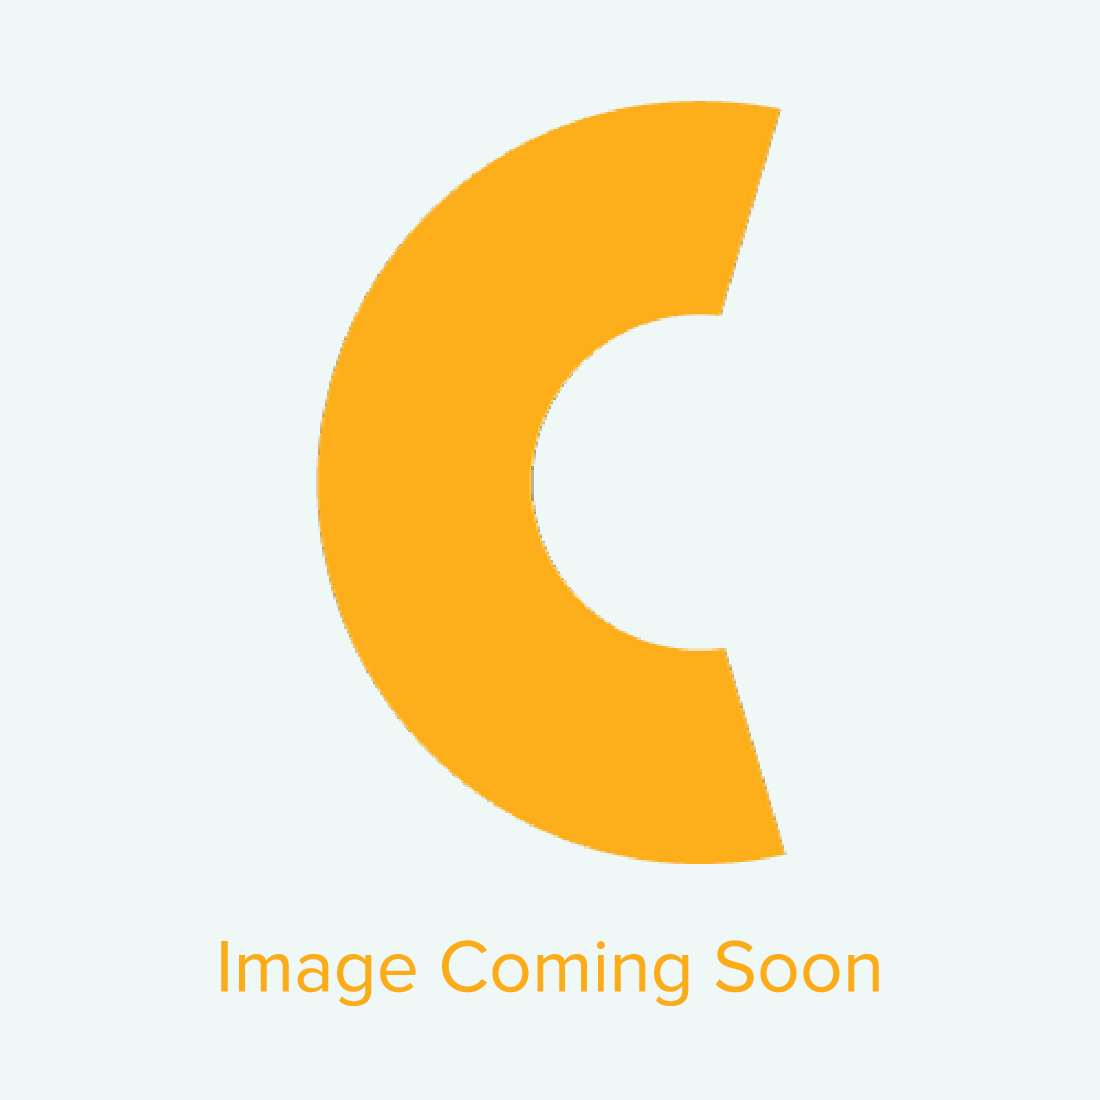 Clear Glass Sublimation Beer Stein - 20oz.